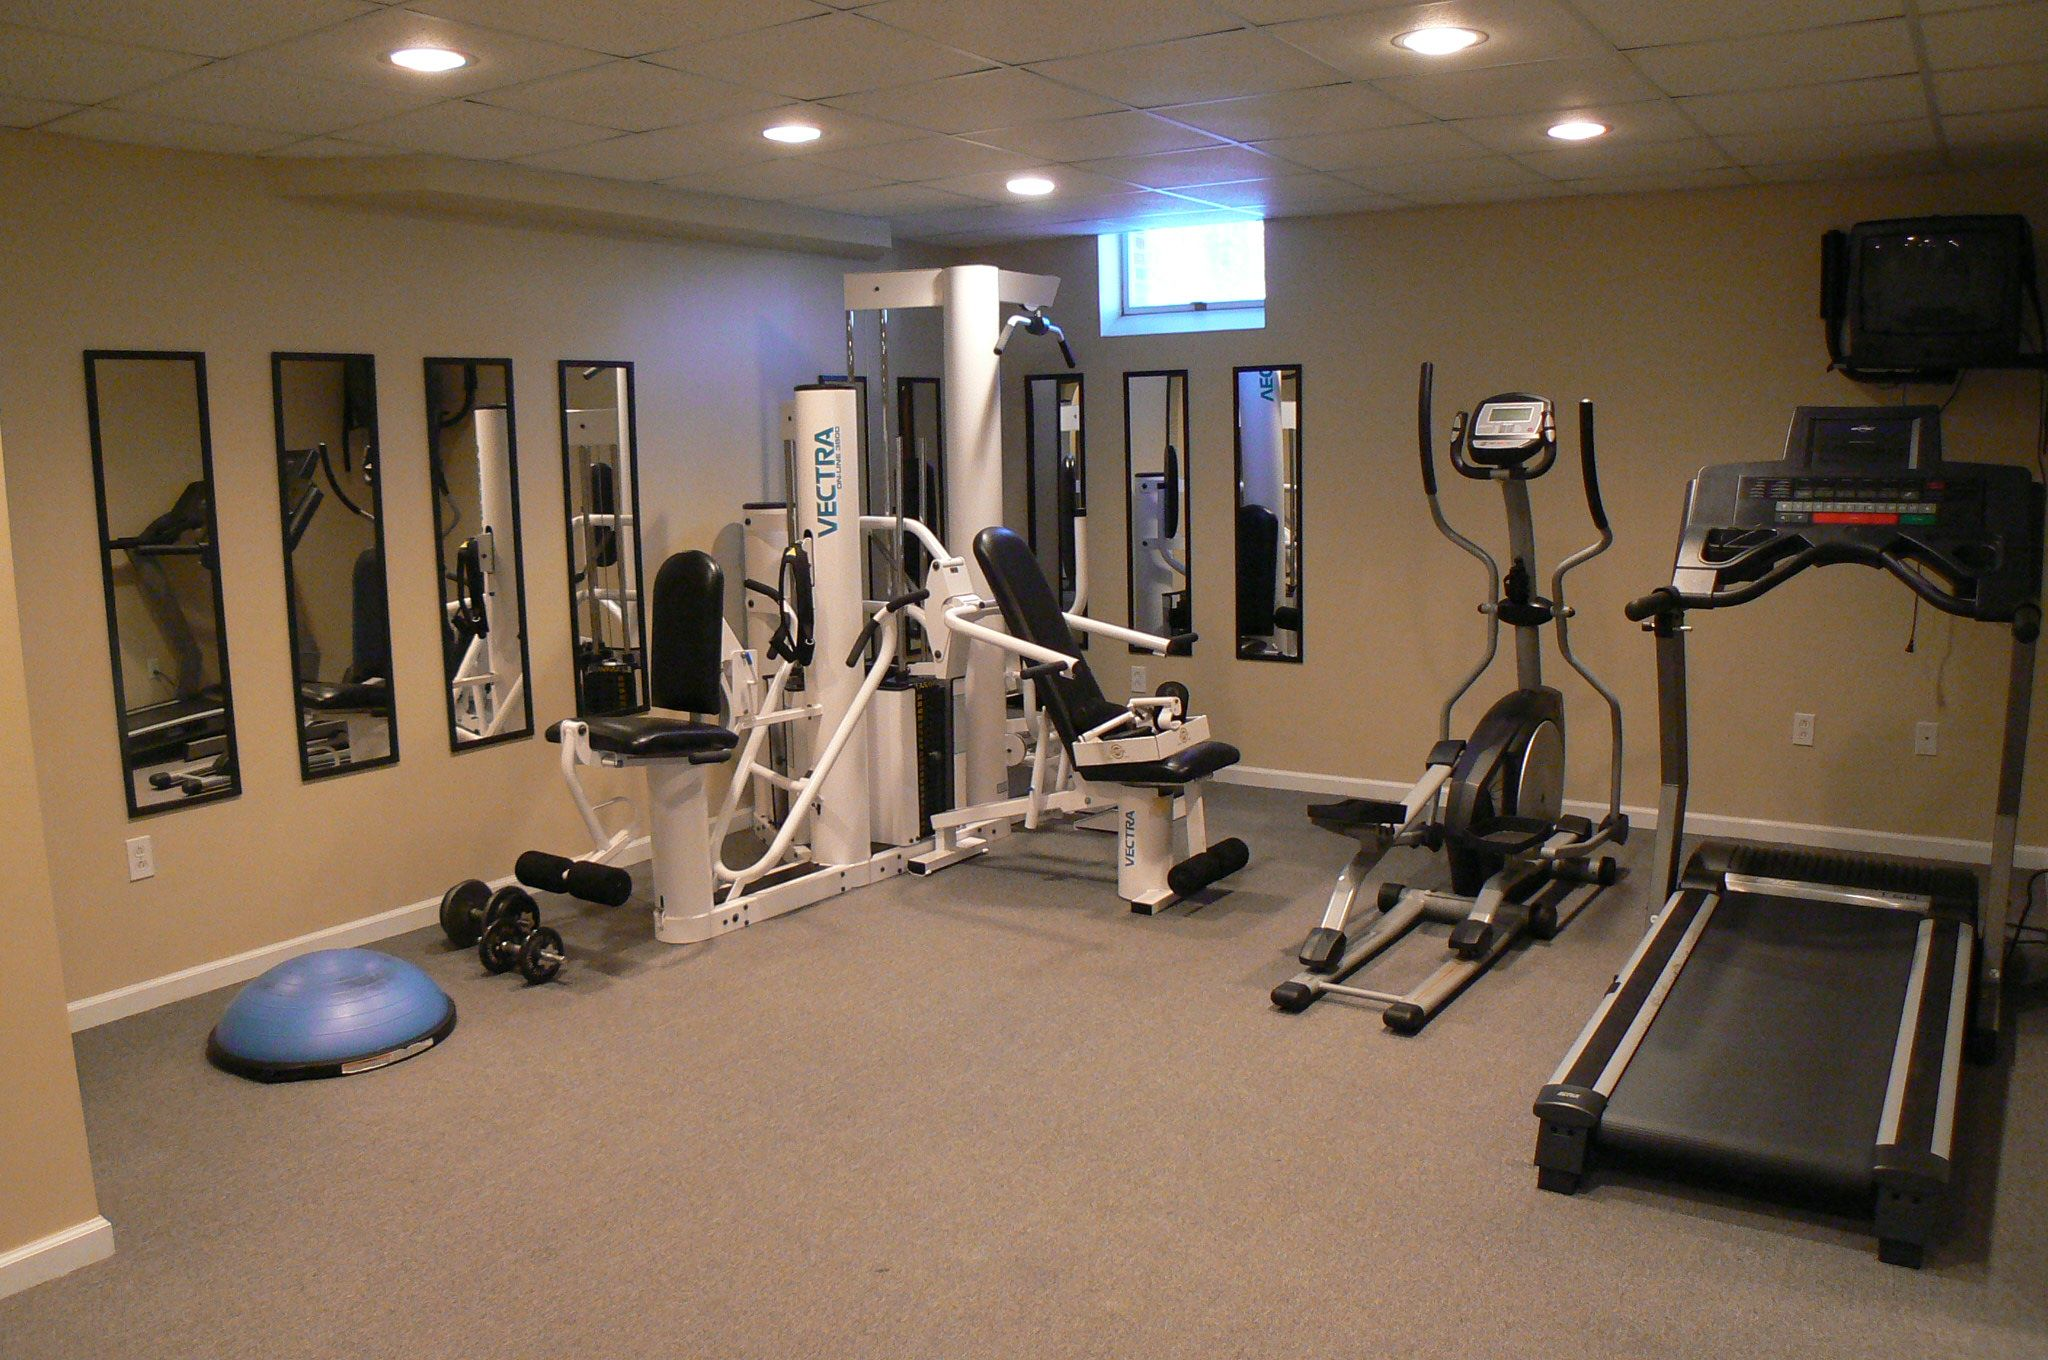 Weight room on pinterest home gyms basement gym and home gym design - Images of home gyms ...